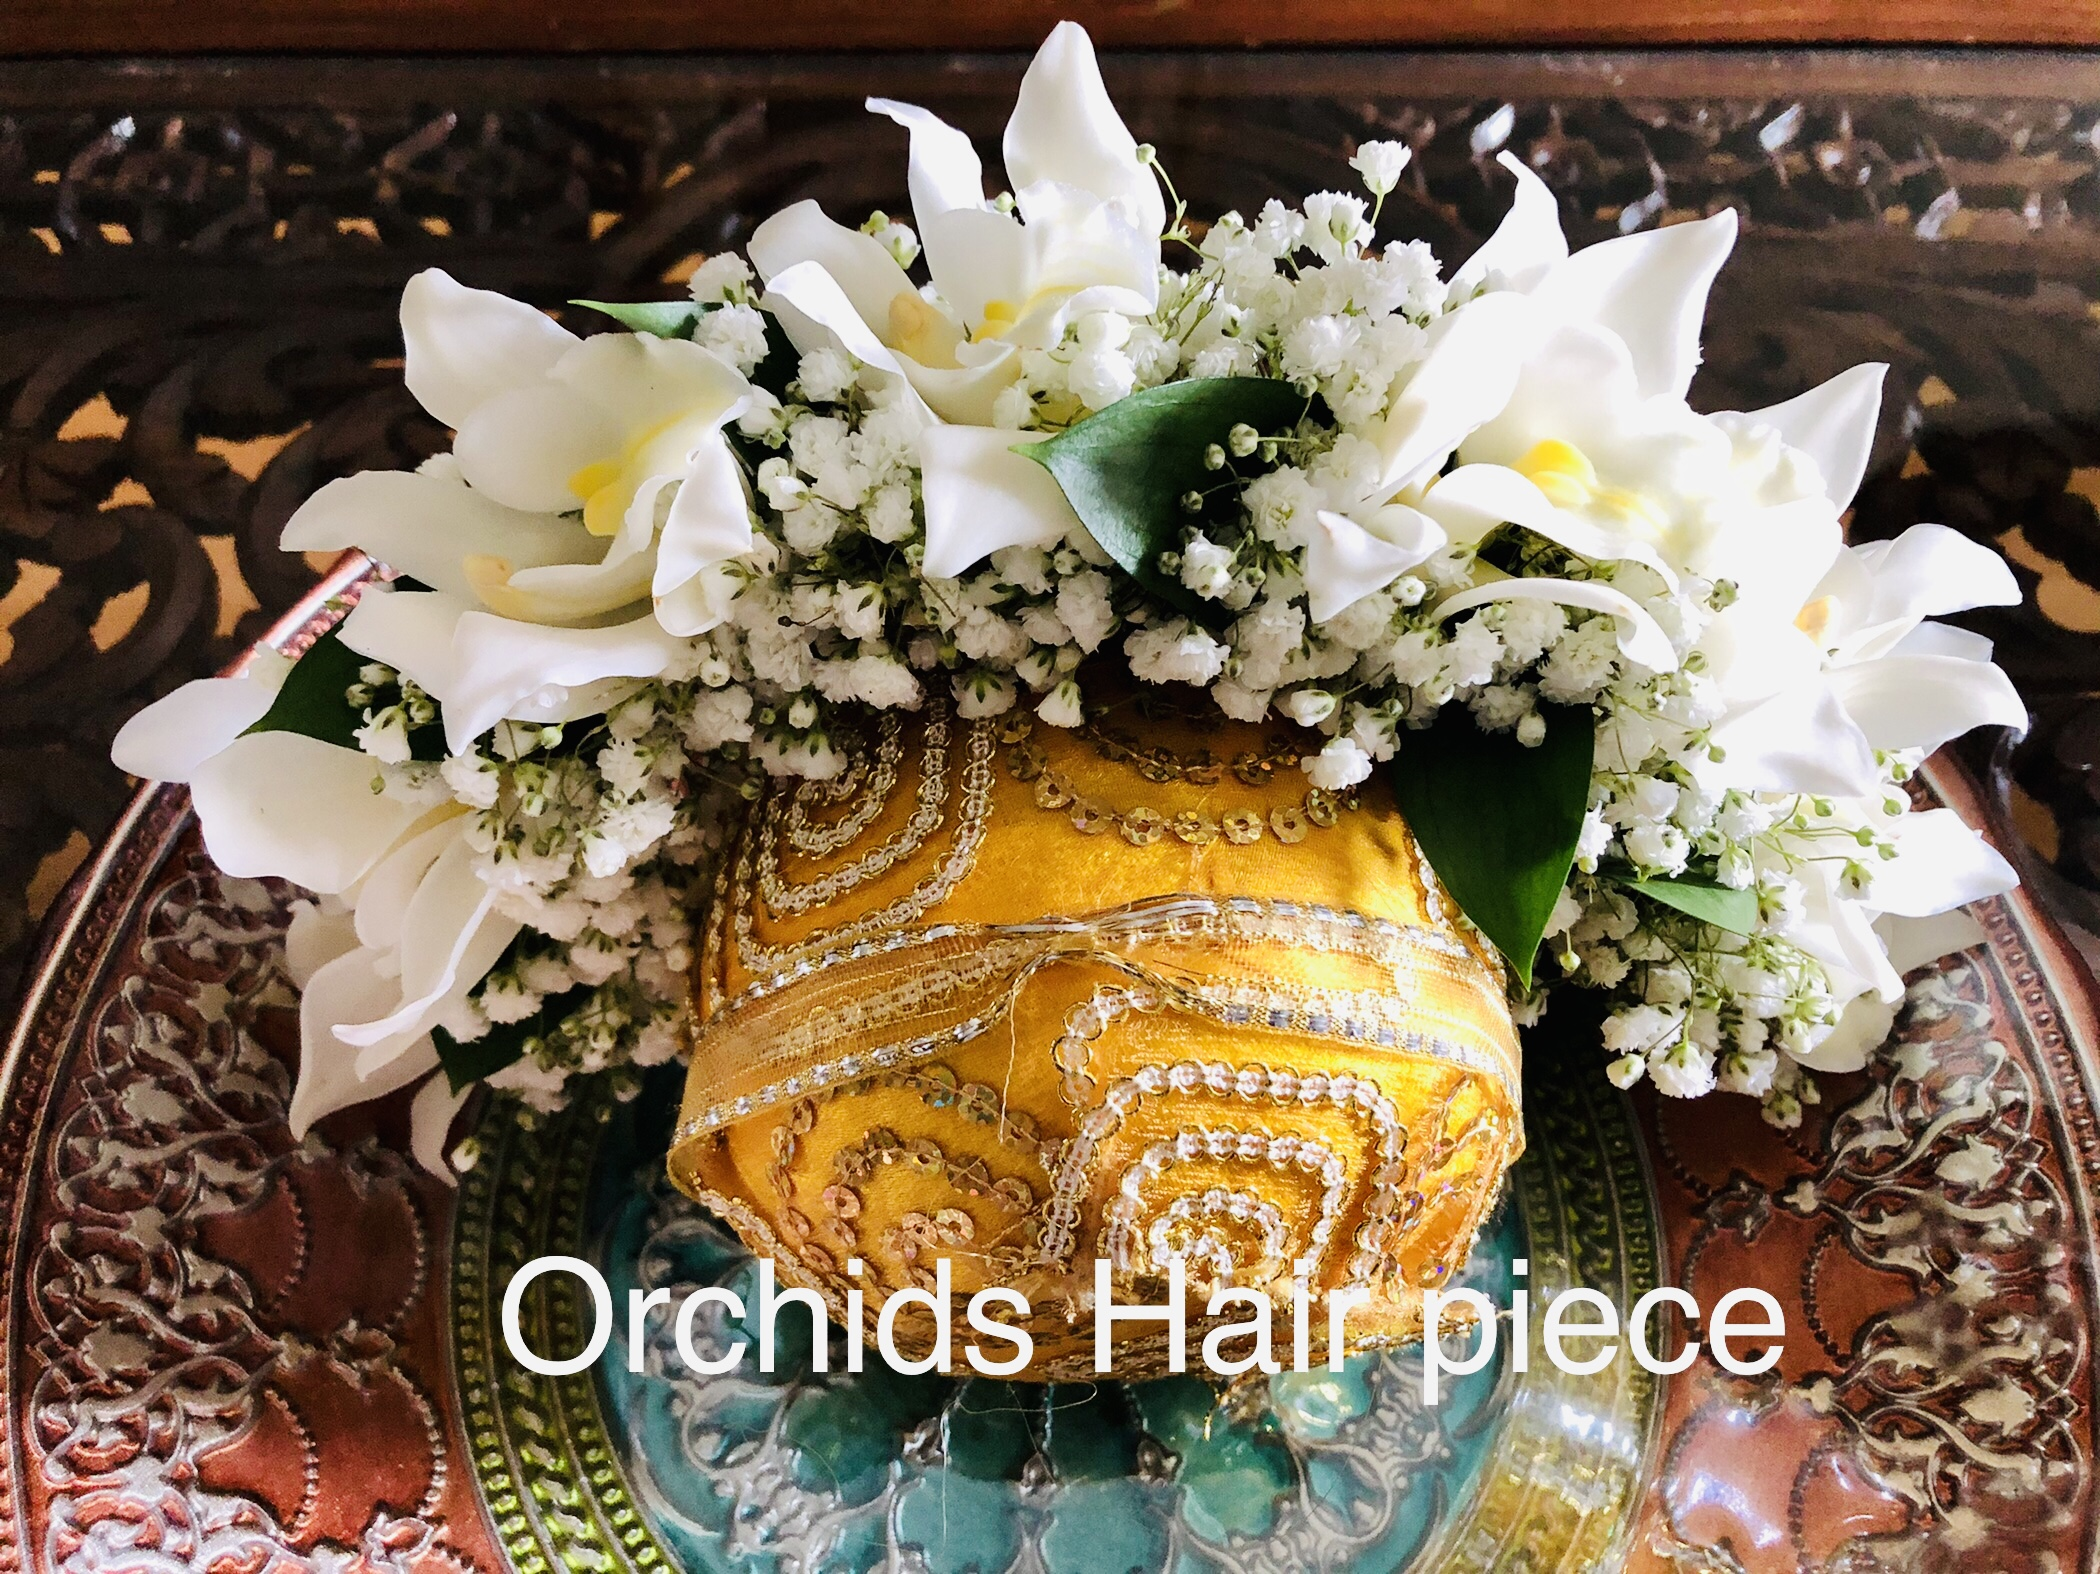 Hair Pc Orchids and Babys breath